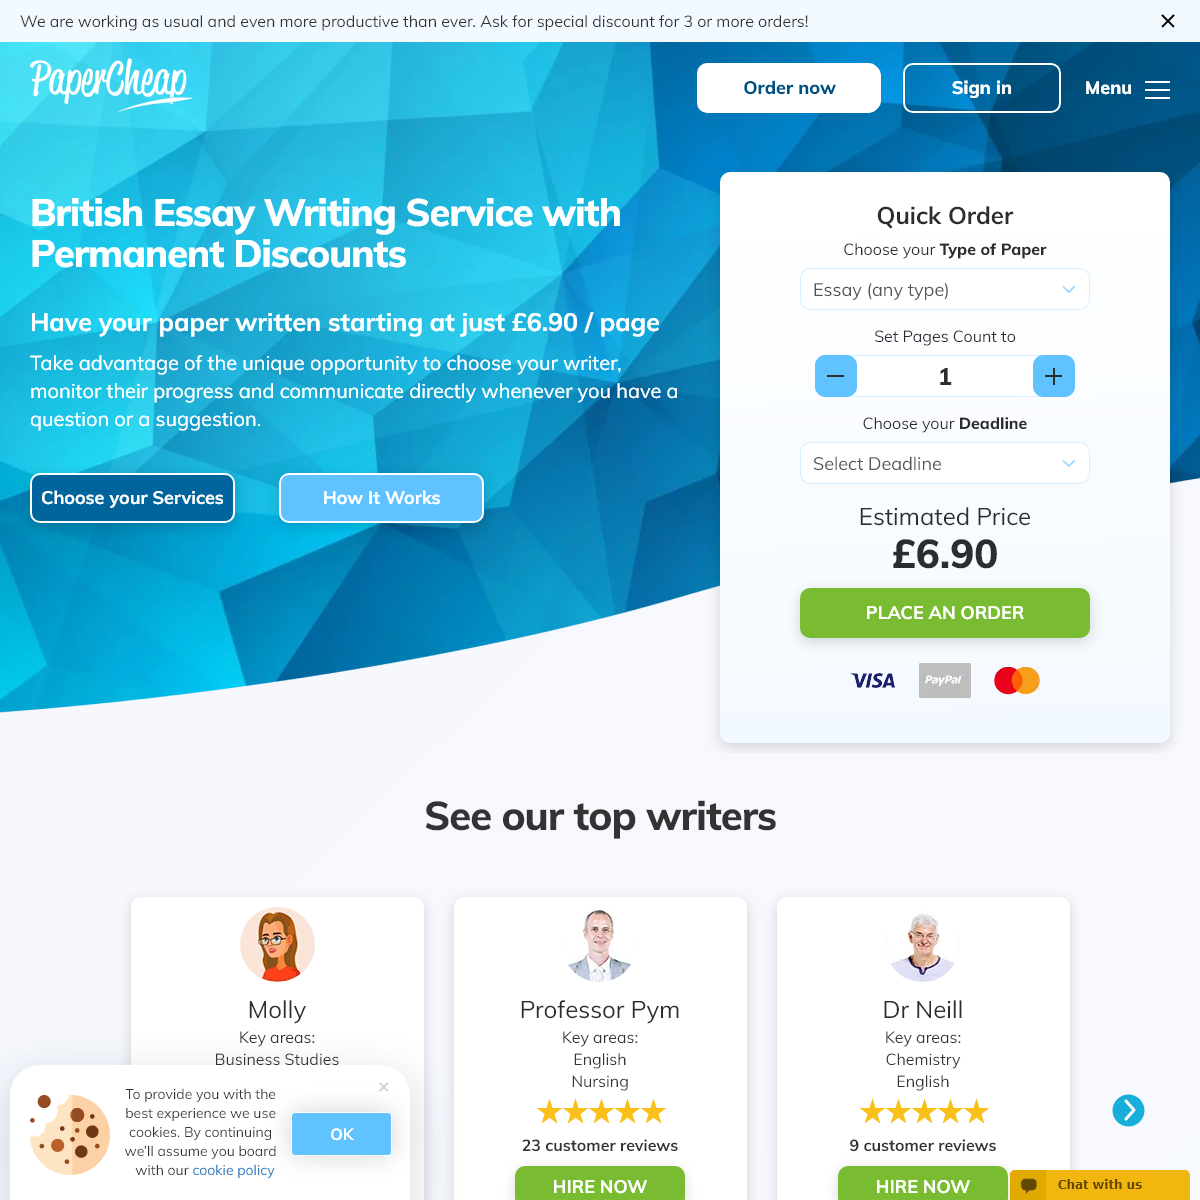 Essay Writing Service UK - Cheap Essays and Papers at PaperCheap